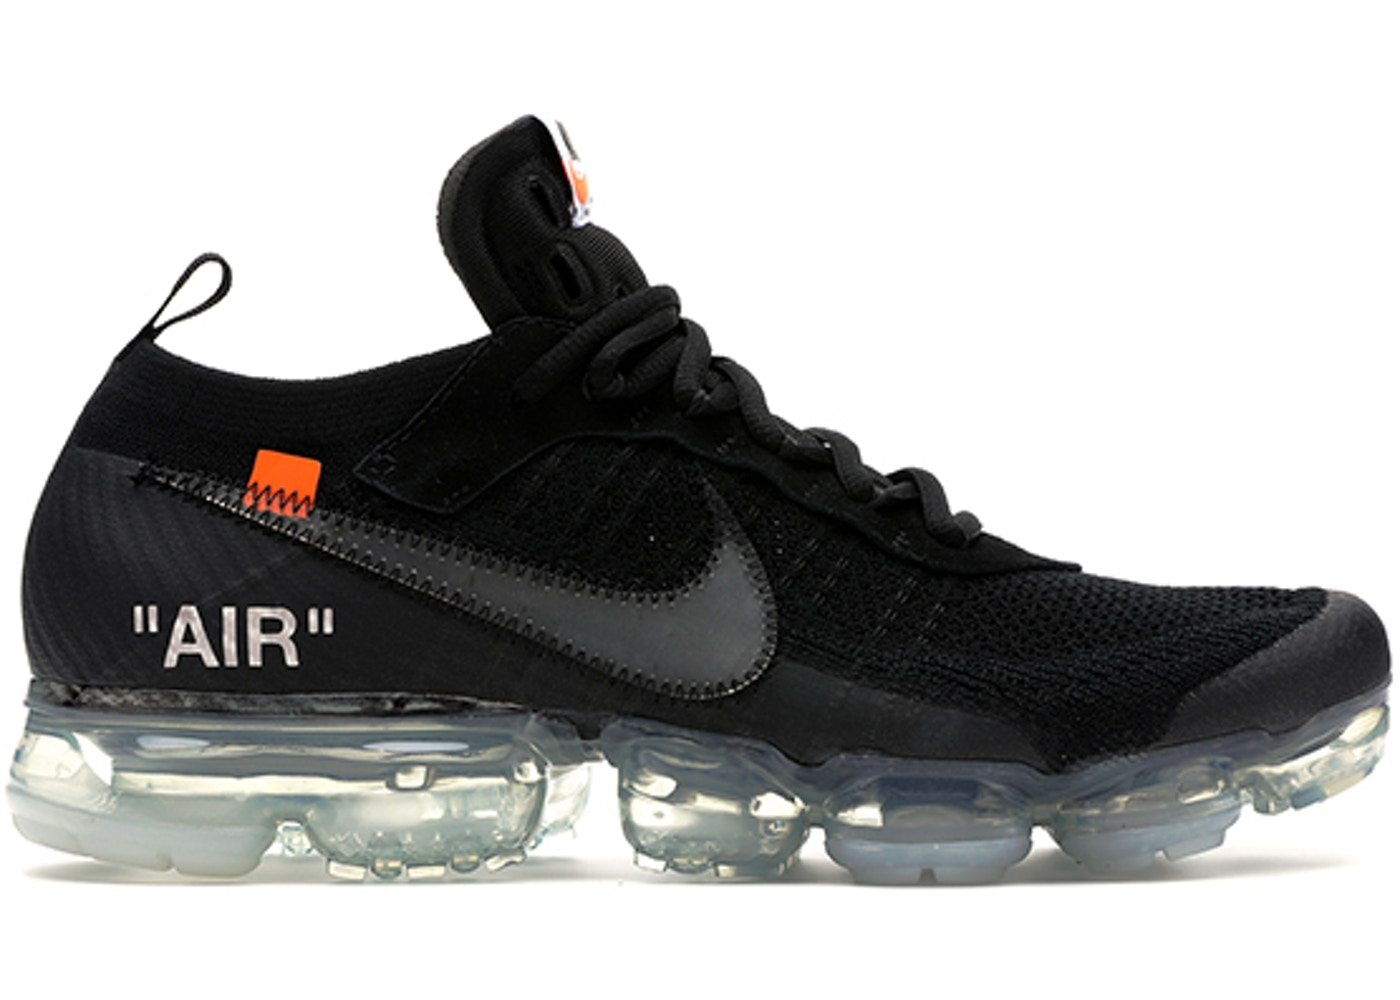 359854b39a7 Air VaporMax Off-White Black - AA3831-002